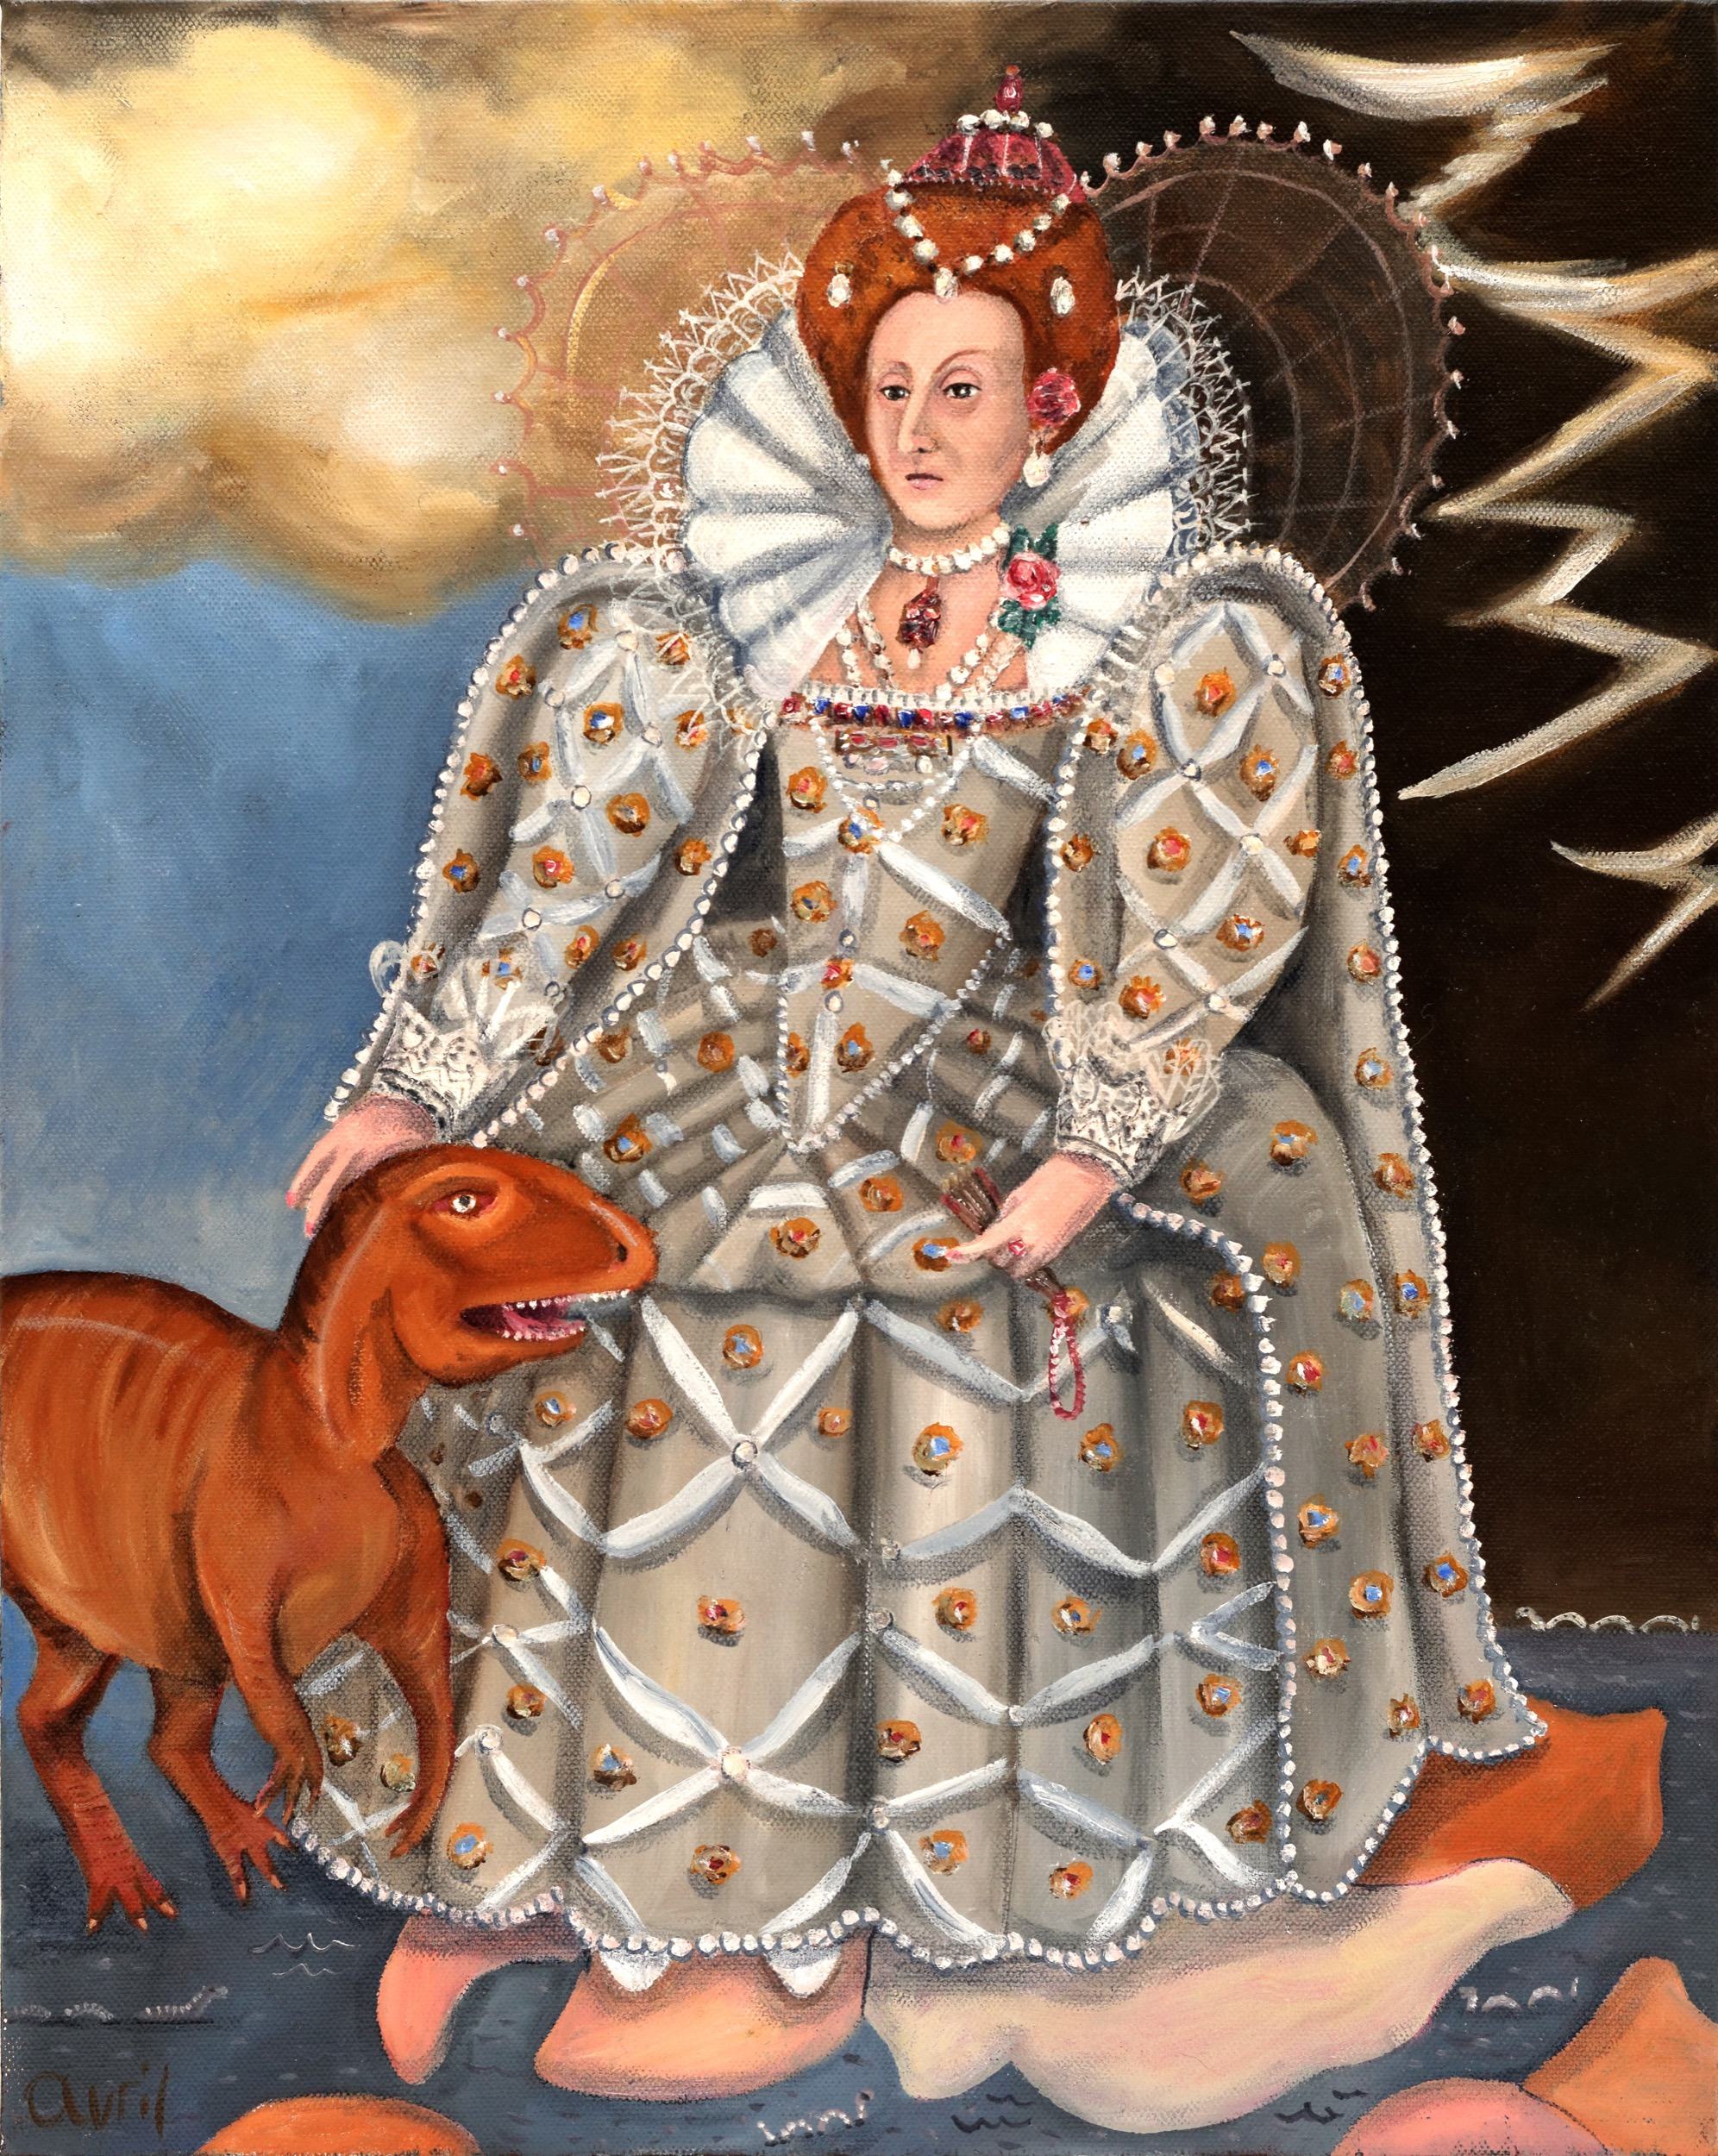 Elizabeth I stands on a giant map of Gondwanaland, with a dinosaur known as Ozraptor. Oil painting of British royalty and dinosaur by Avril E Jean